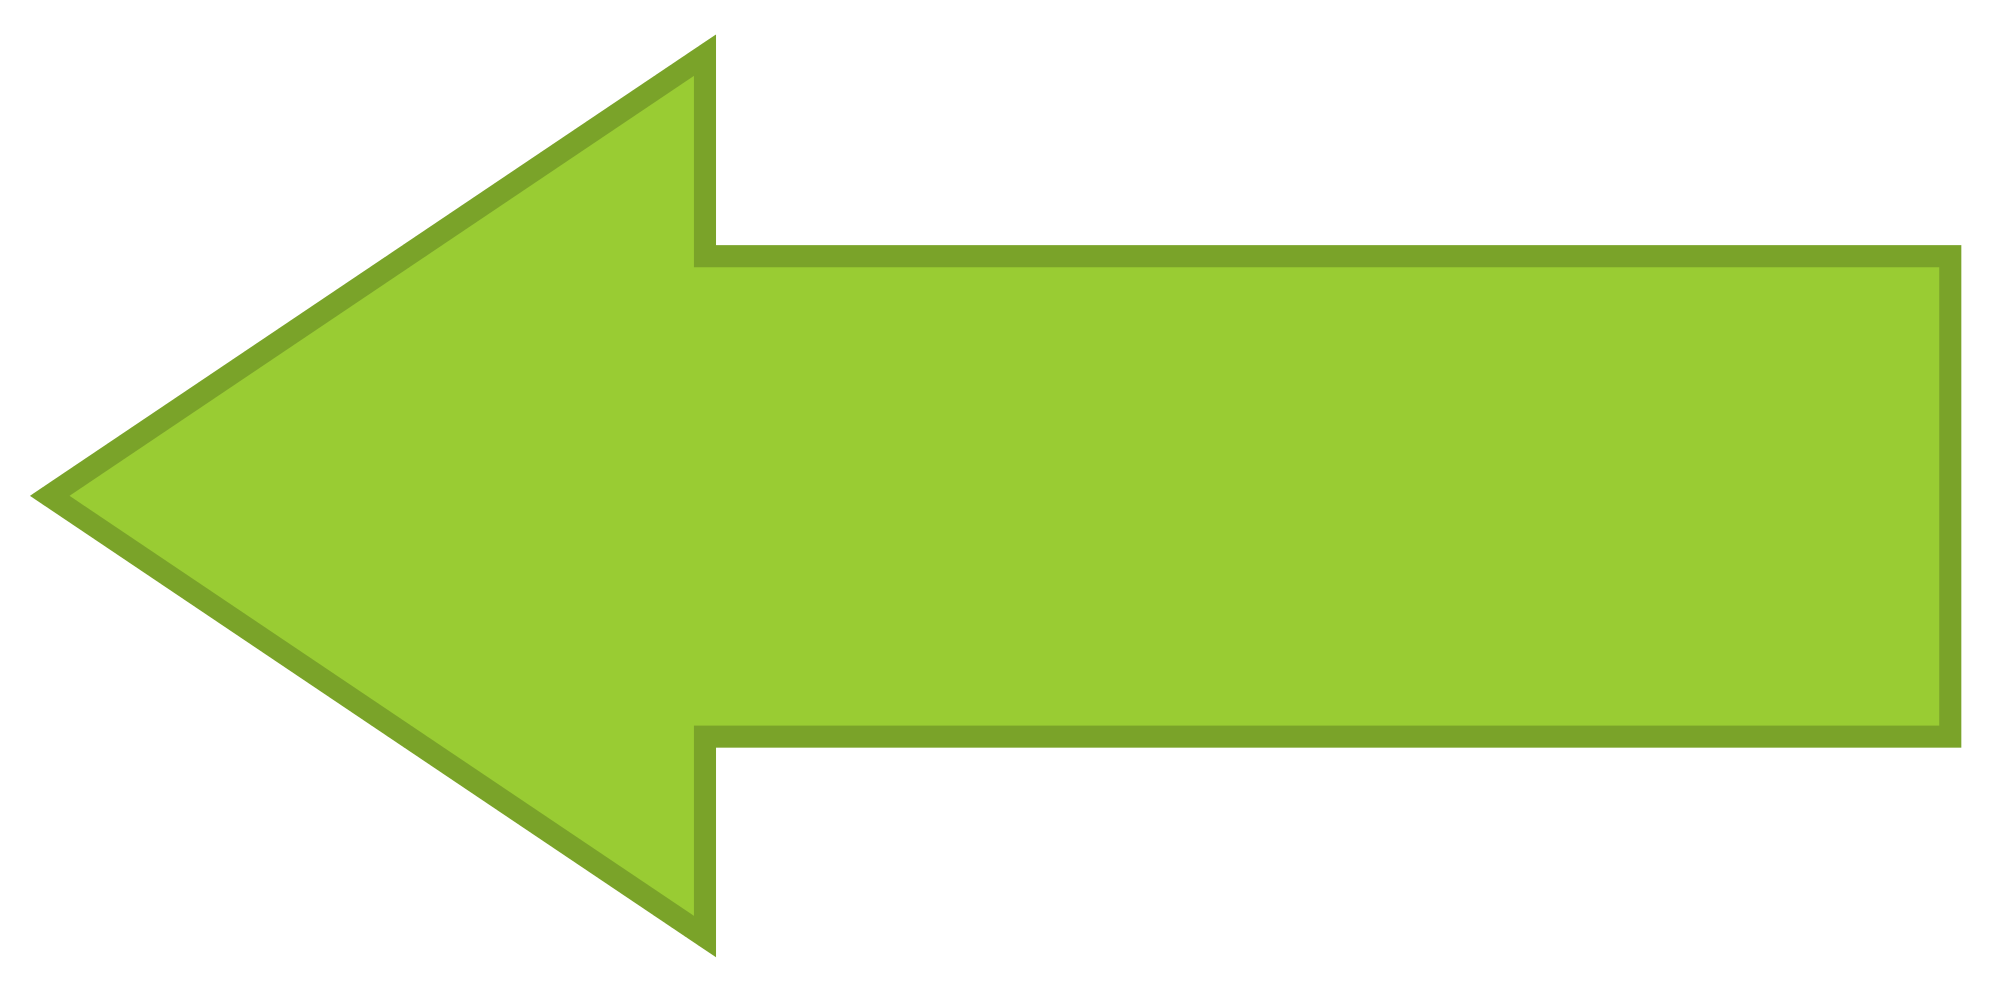 Left facing arrow png library download File:Arrow facing left - Green.svg - Wikimedia Commons png library download